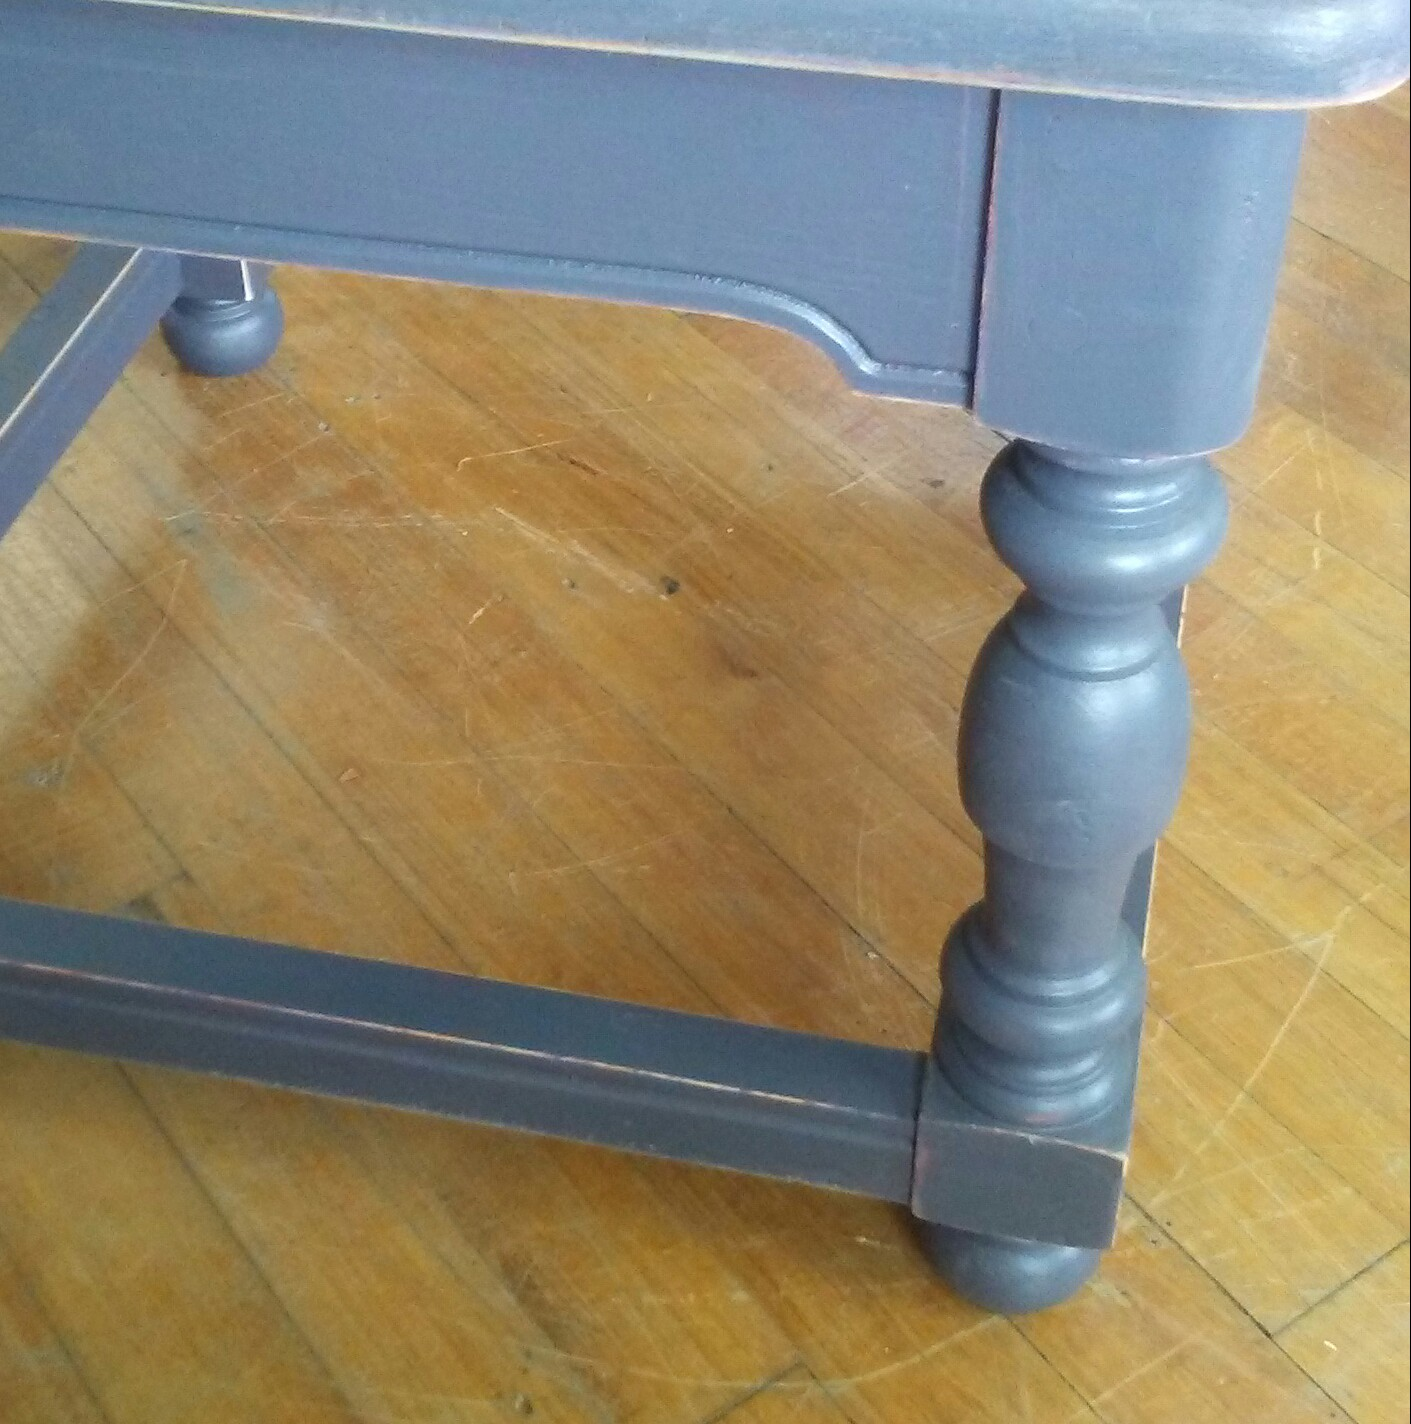 dark gray painted end table shabby chic accent for ori charcoal refurbished vintage and slightly distressed this looks great country farmhouse primitive traditional wood bedside